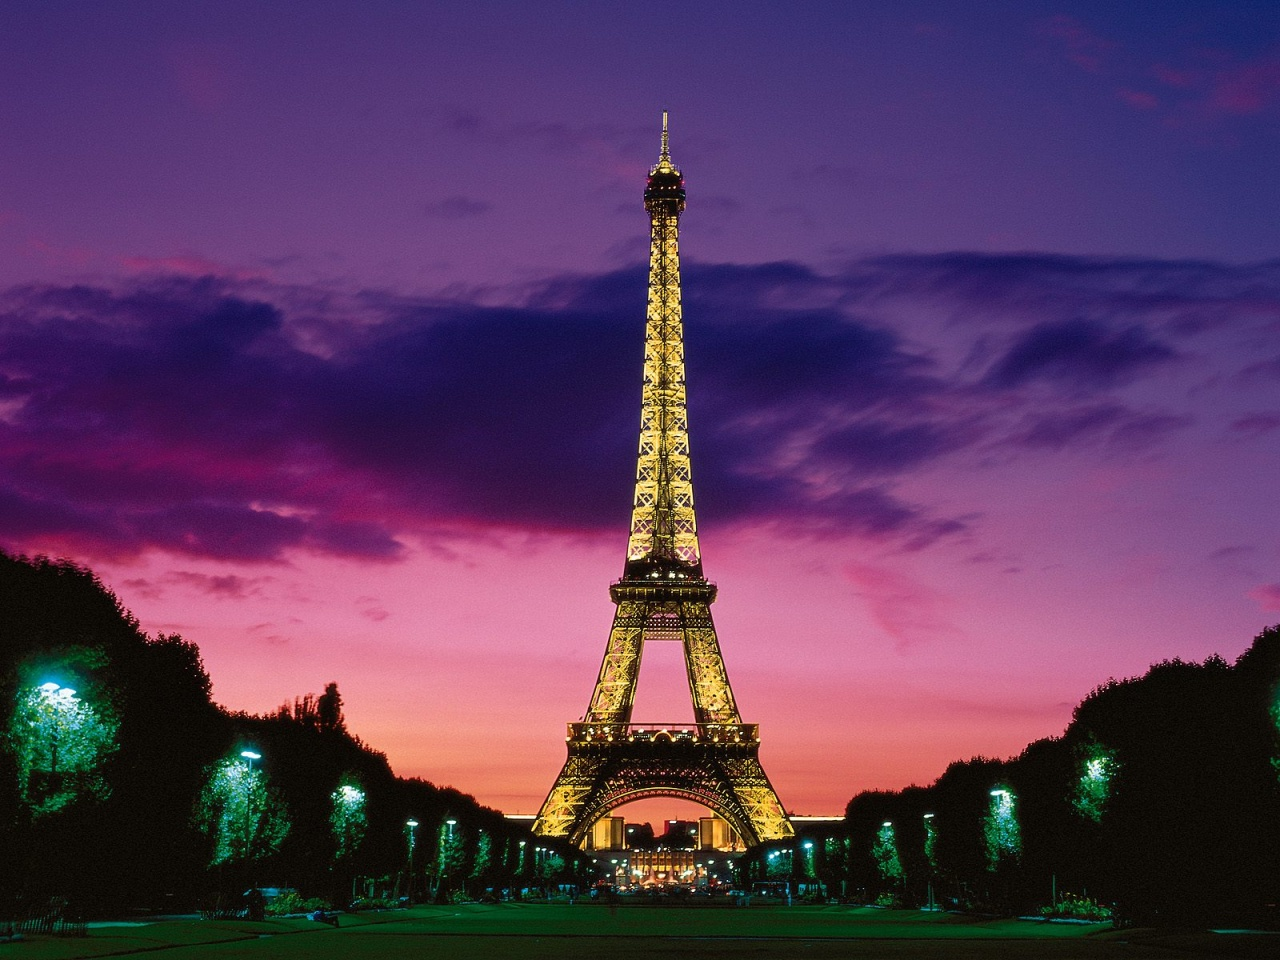 Eiffel Tower At Night Paris France Wallpapers In Jpg Format For Free Download